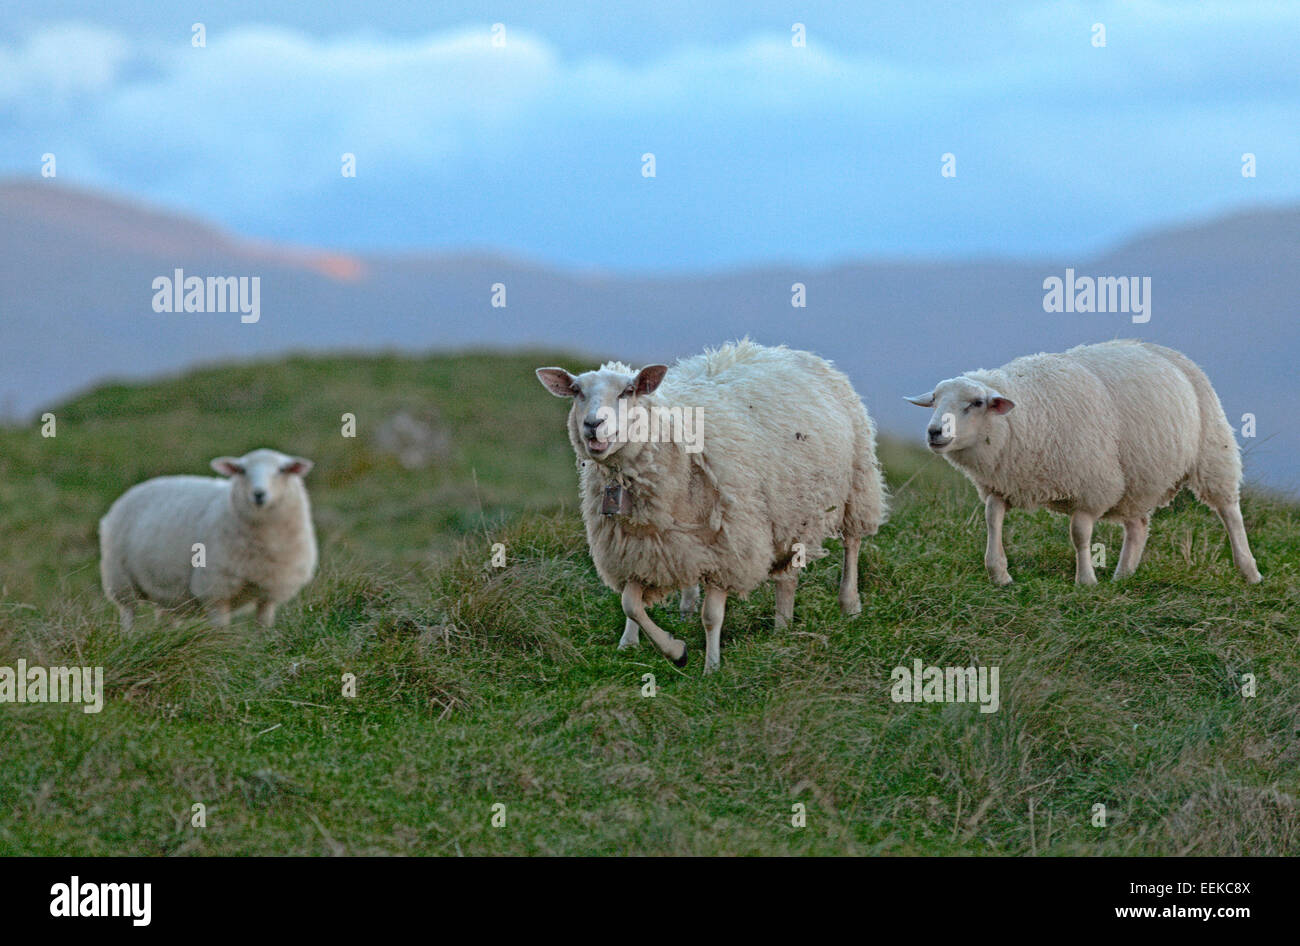 Grazing sheep with lambs at the Atlantic coast, Norway - Stock Image